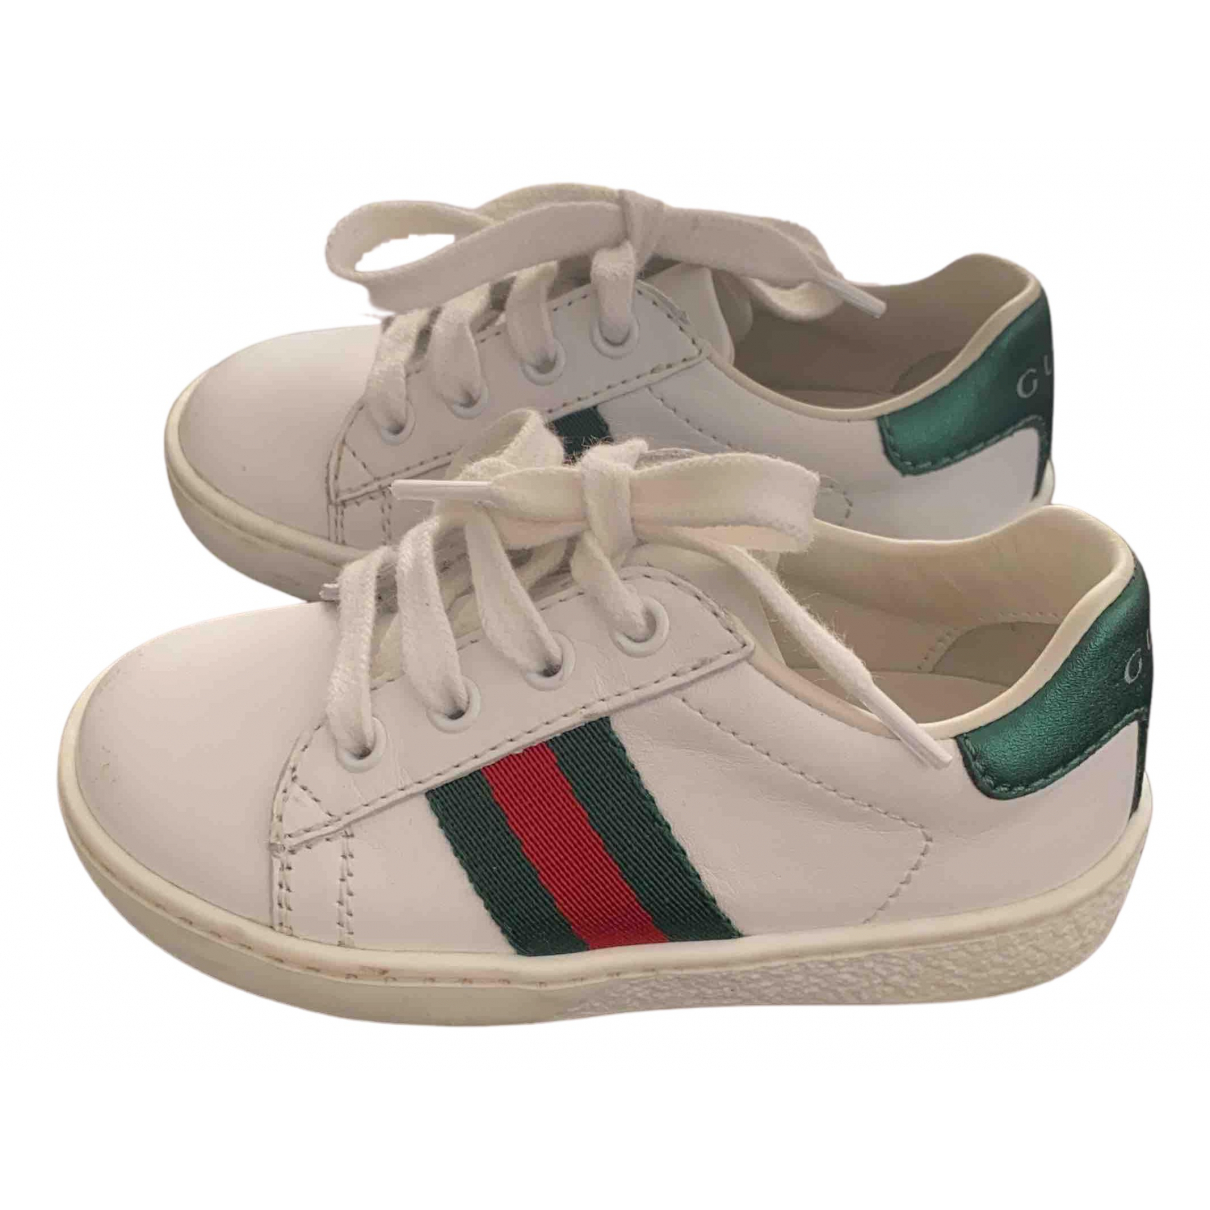 Gucci N White Leather Trainers for Kids 21 FR